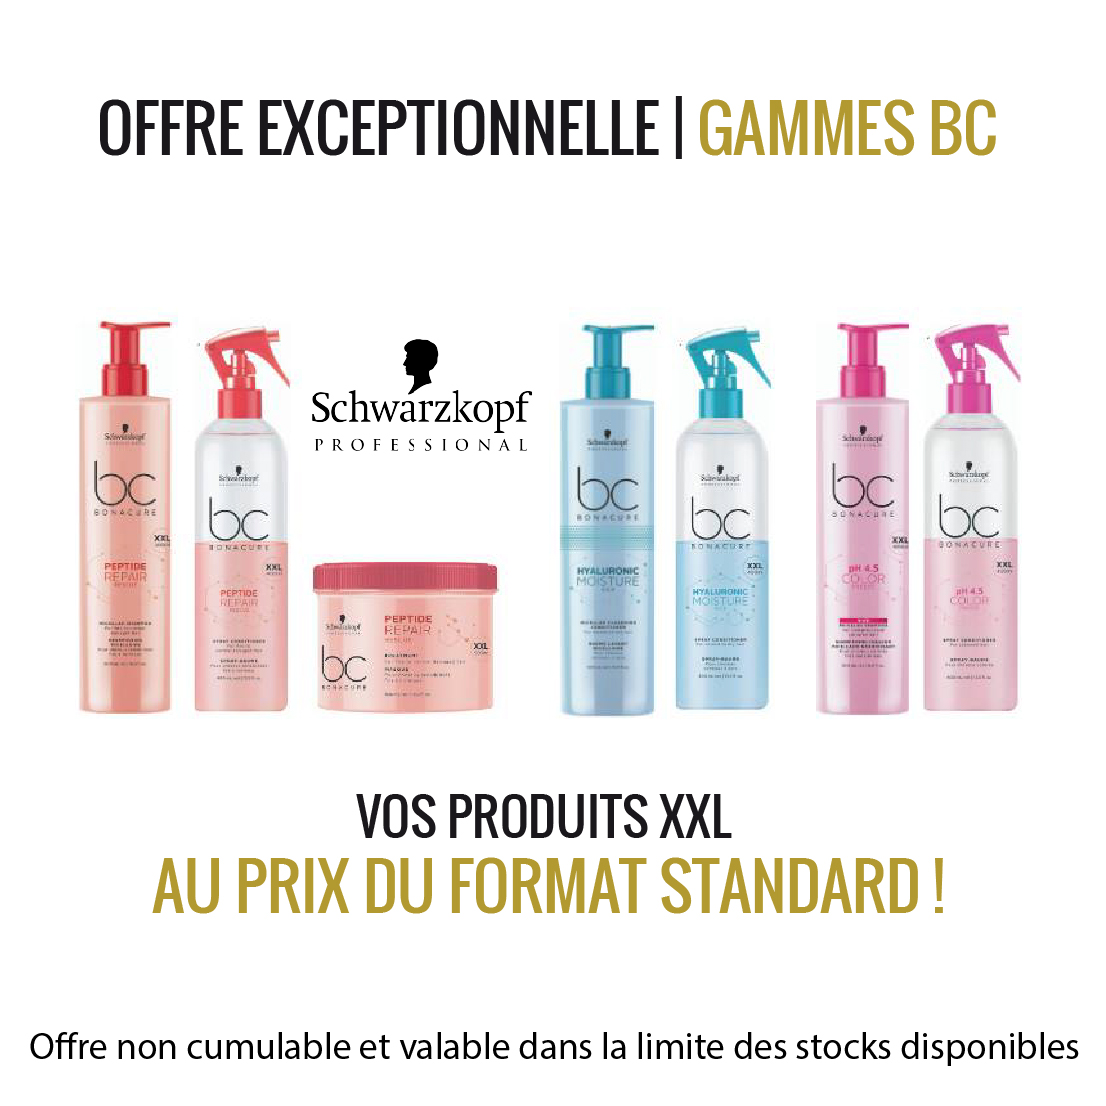 Gamme BC Access Coiffure